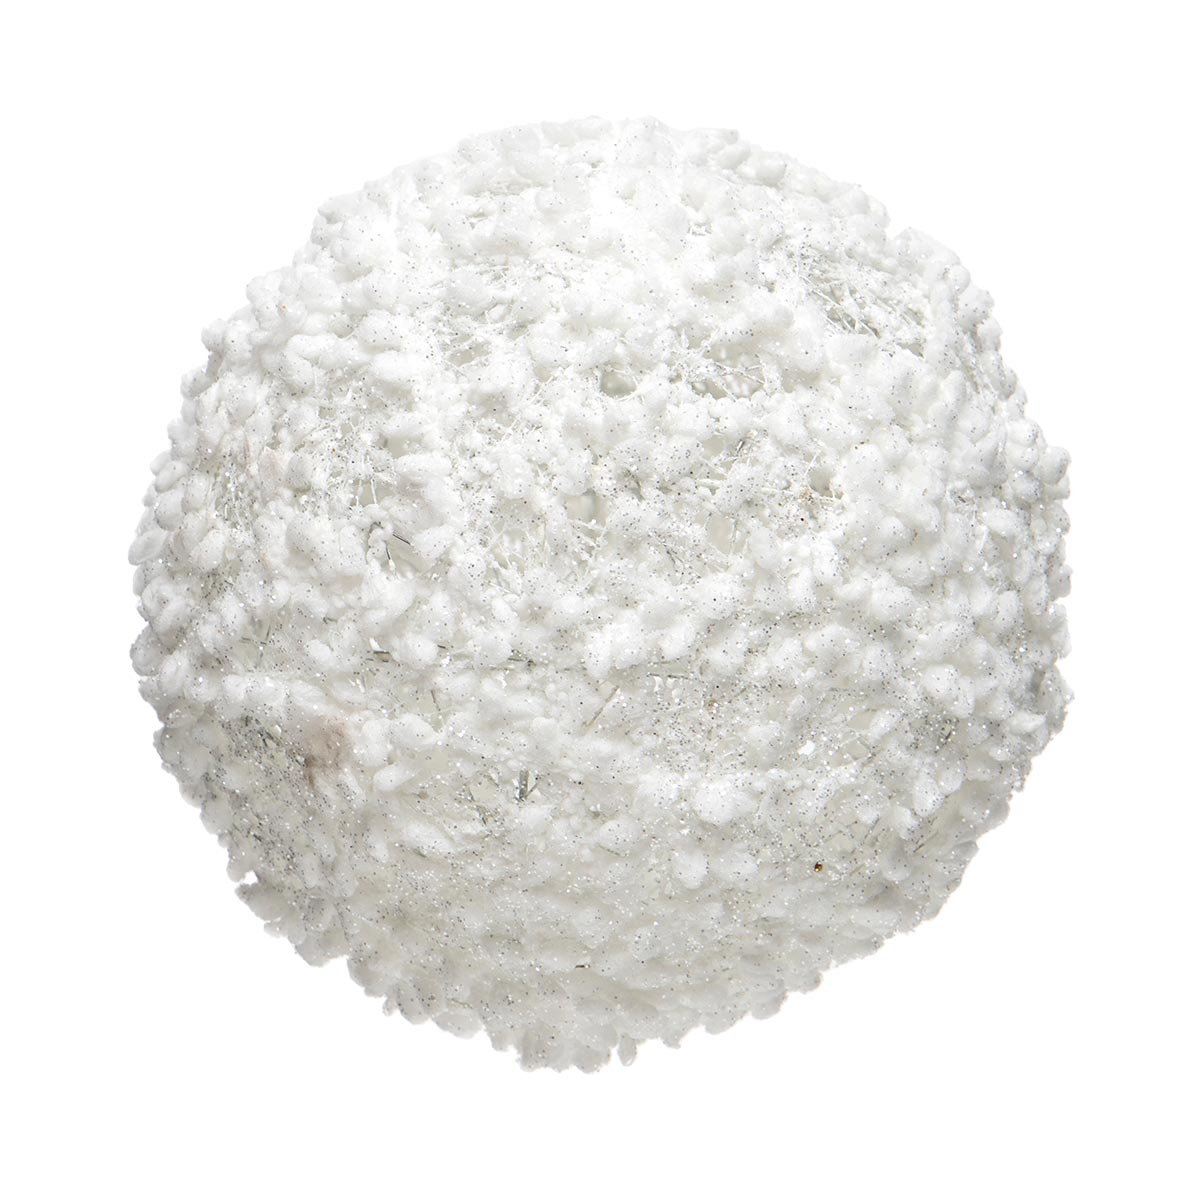 WHITE PUFF BALL ORNAMENT WITH GLITTER